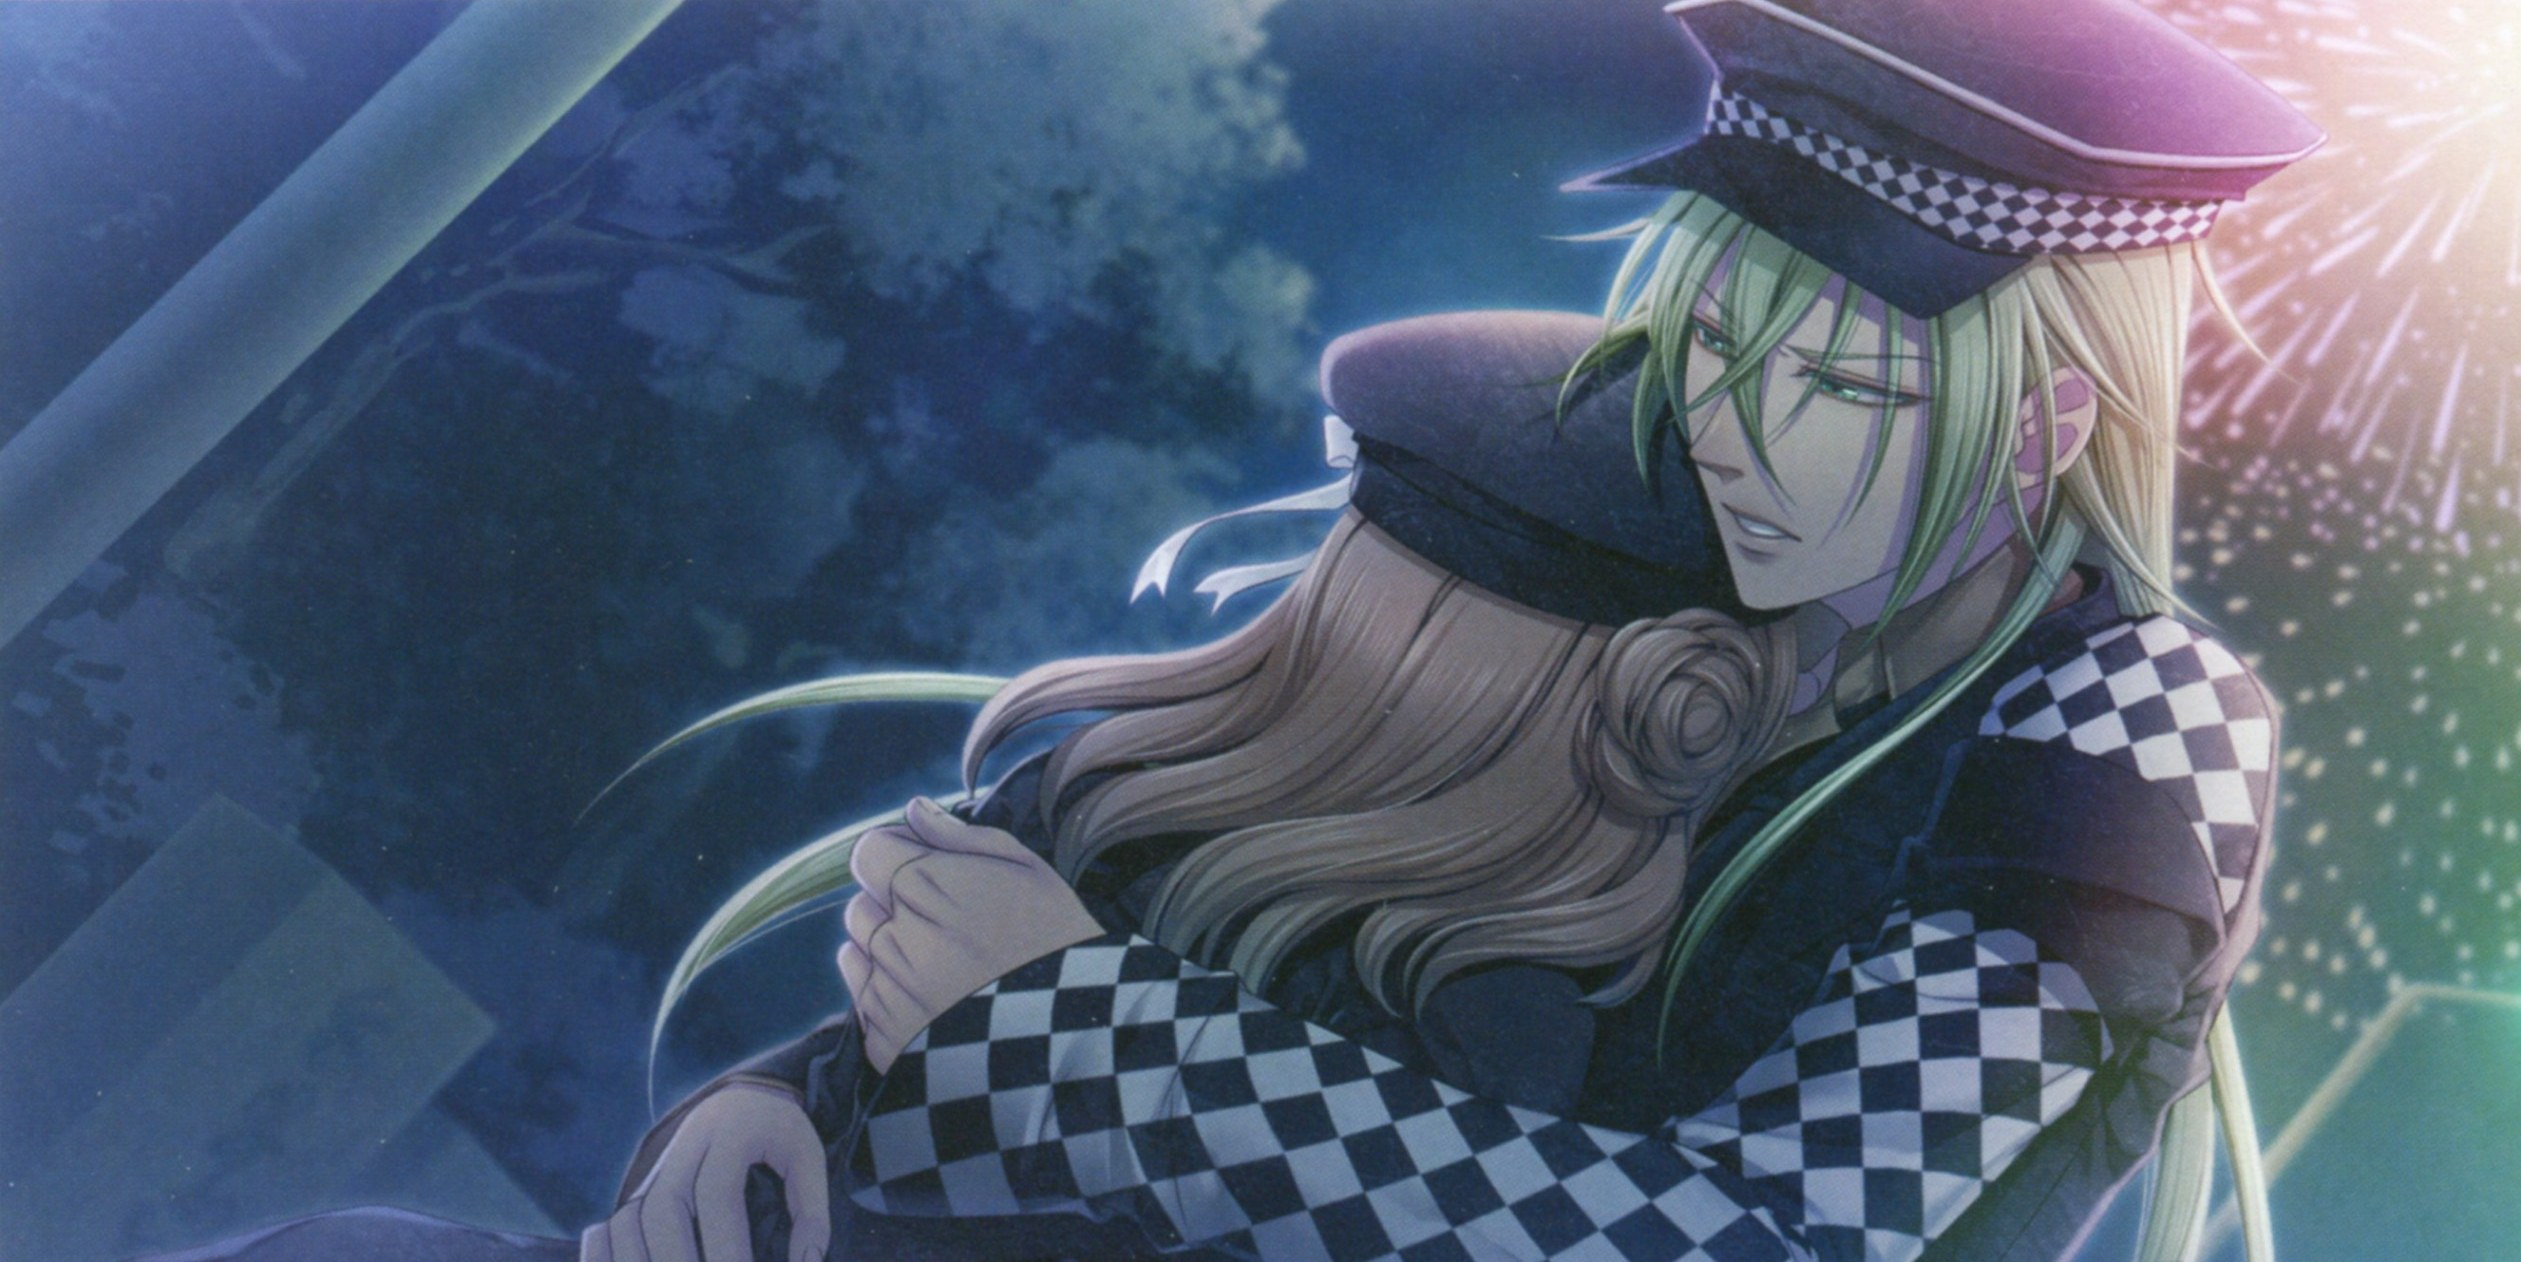 Tags Anime IDEA FACTORY AMNESIA Heroine Ukyo